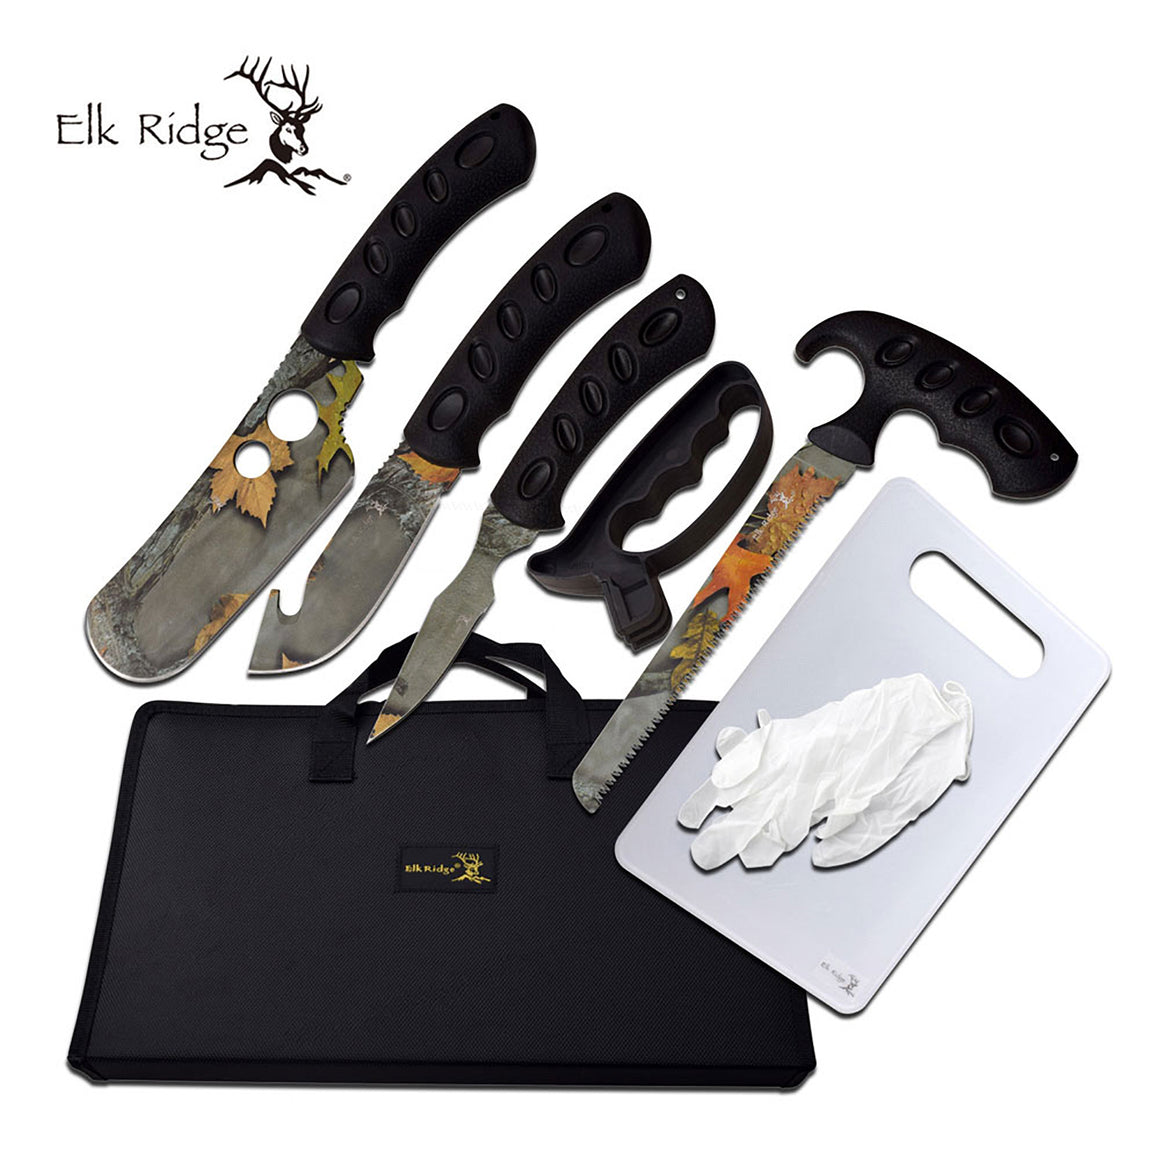 Elk Ridge ER-925 Fixed Blade Knife